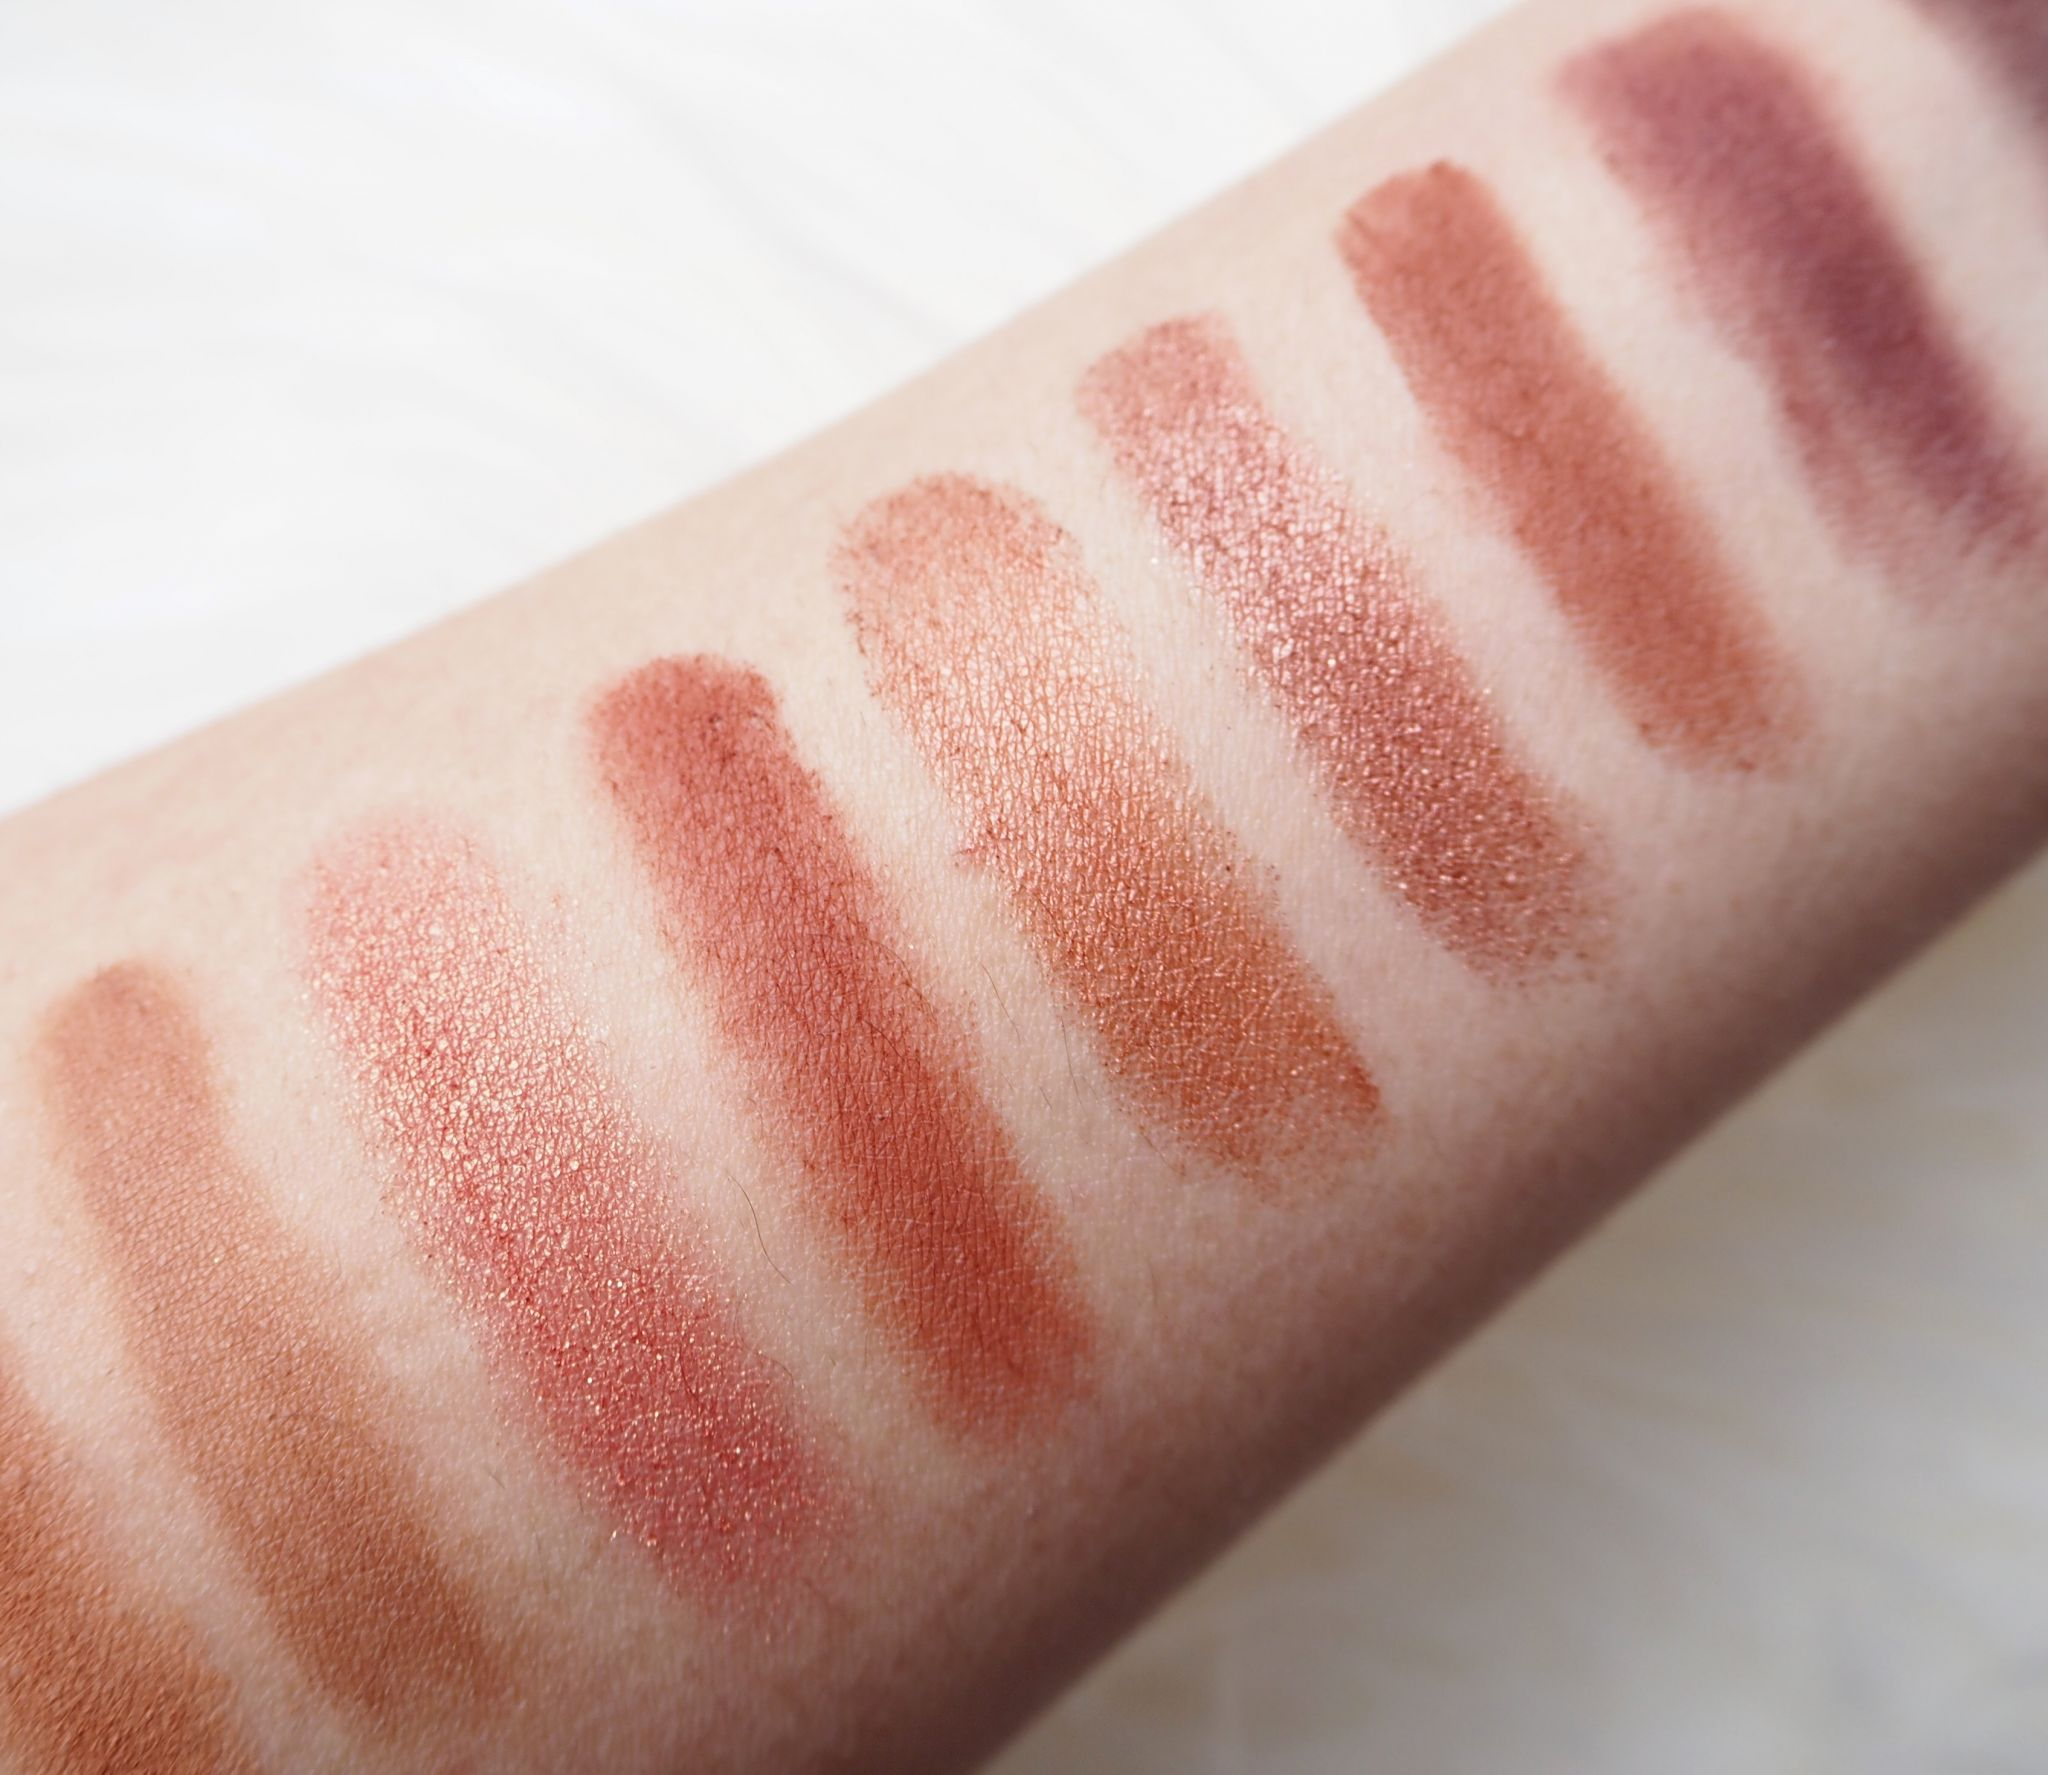 Urban Decay Naked Heat transitional